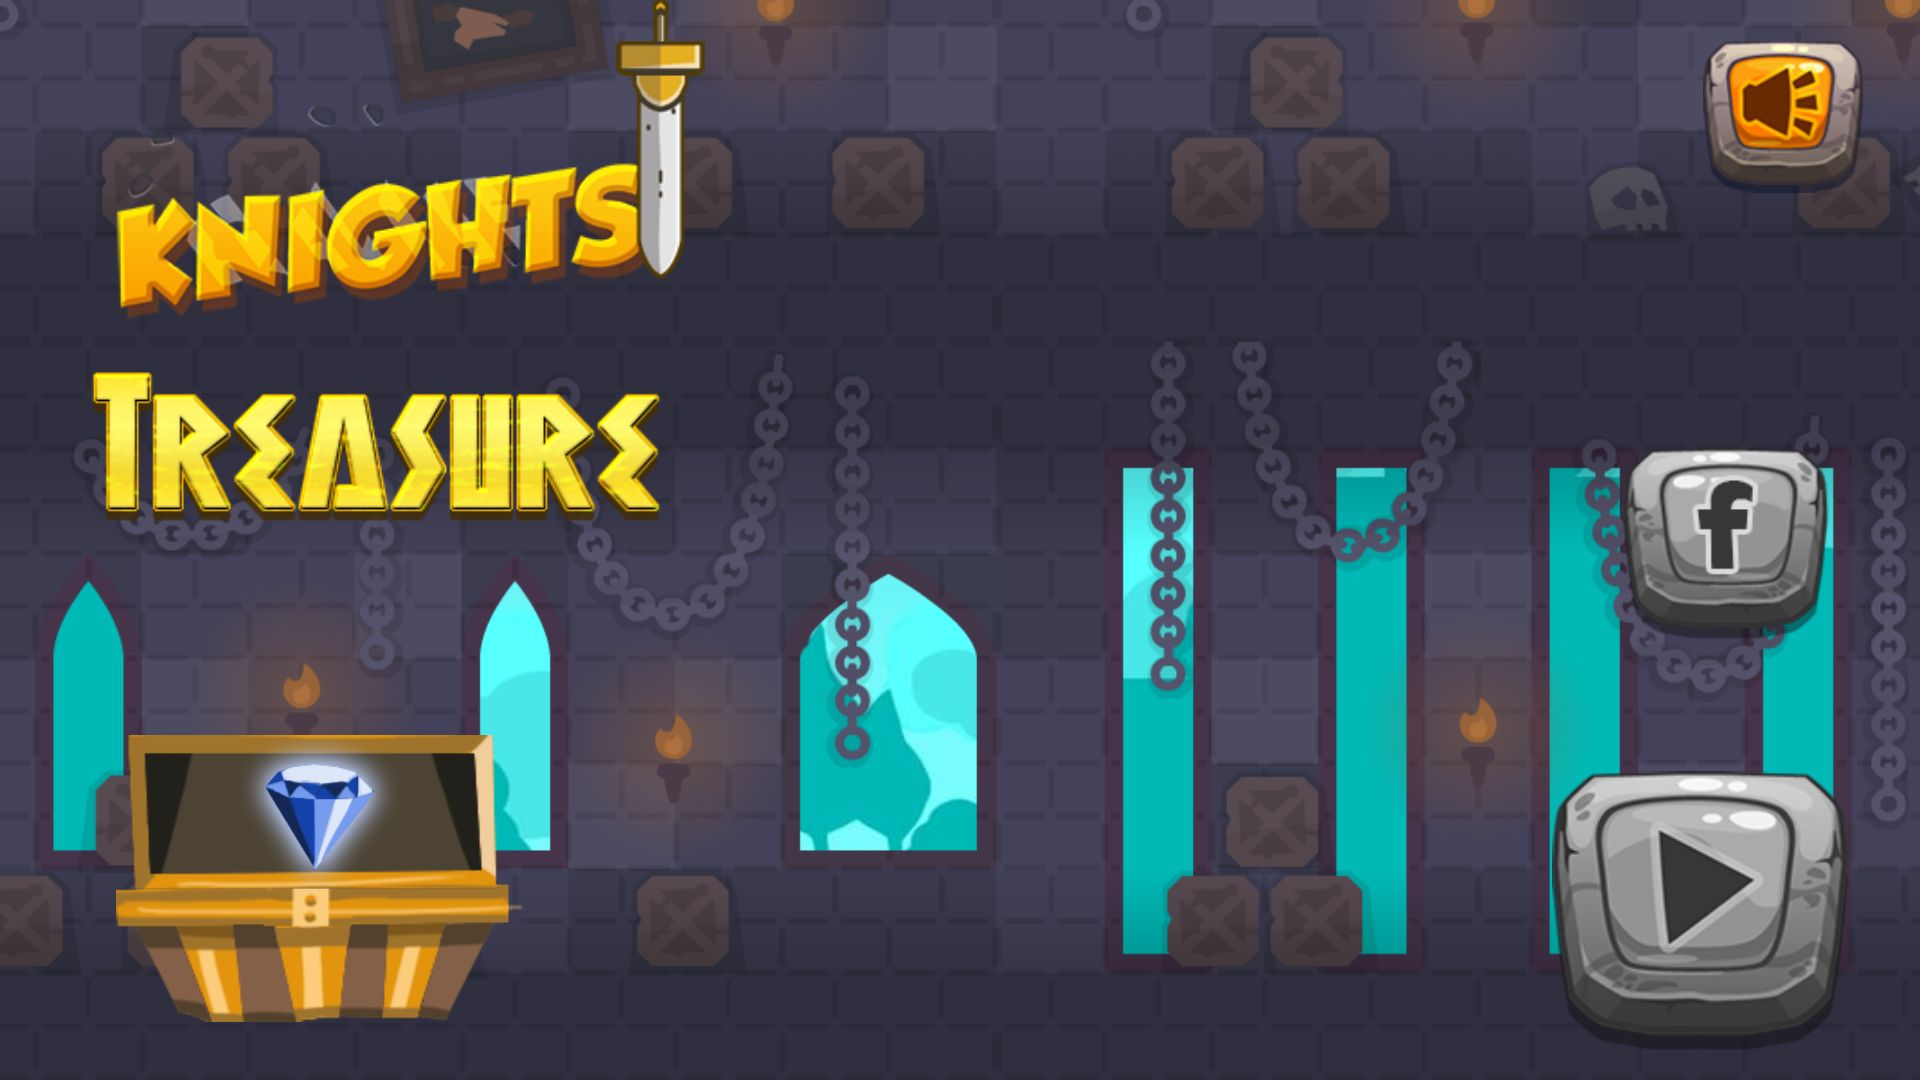 Knight Treasure - Unity Complete Project Screenshot 1